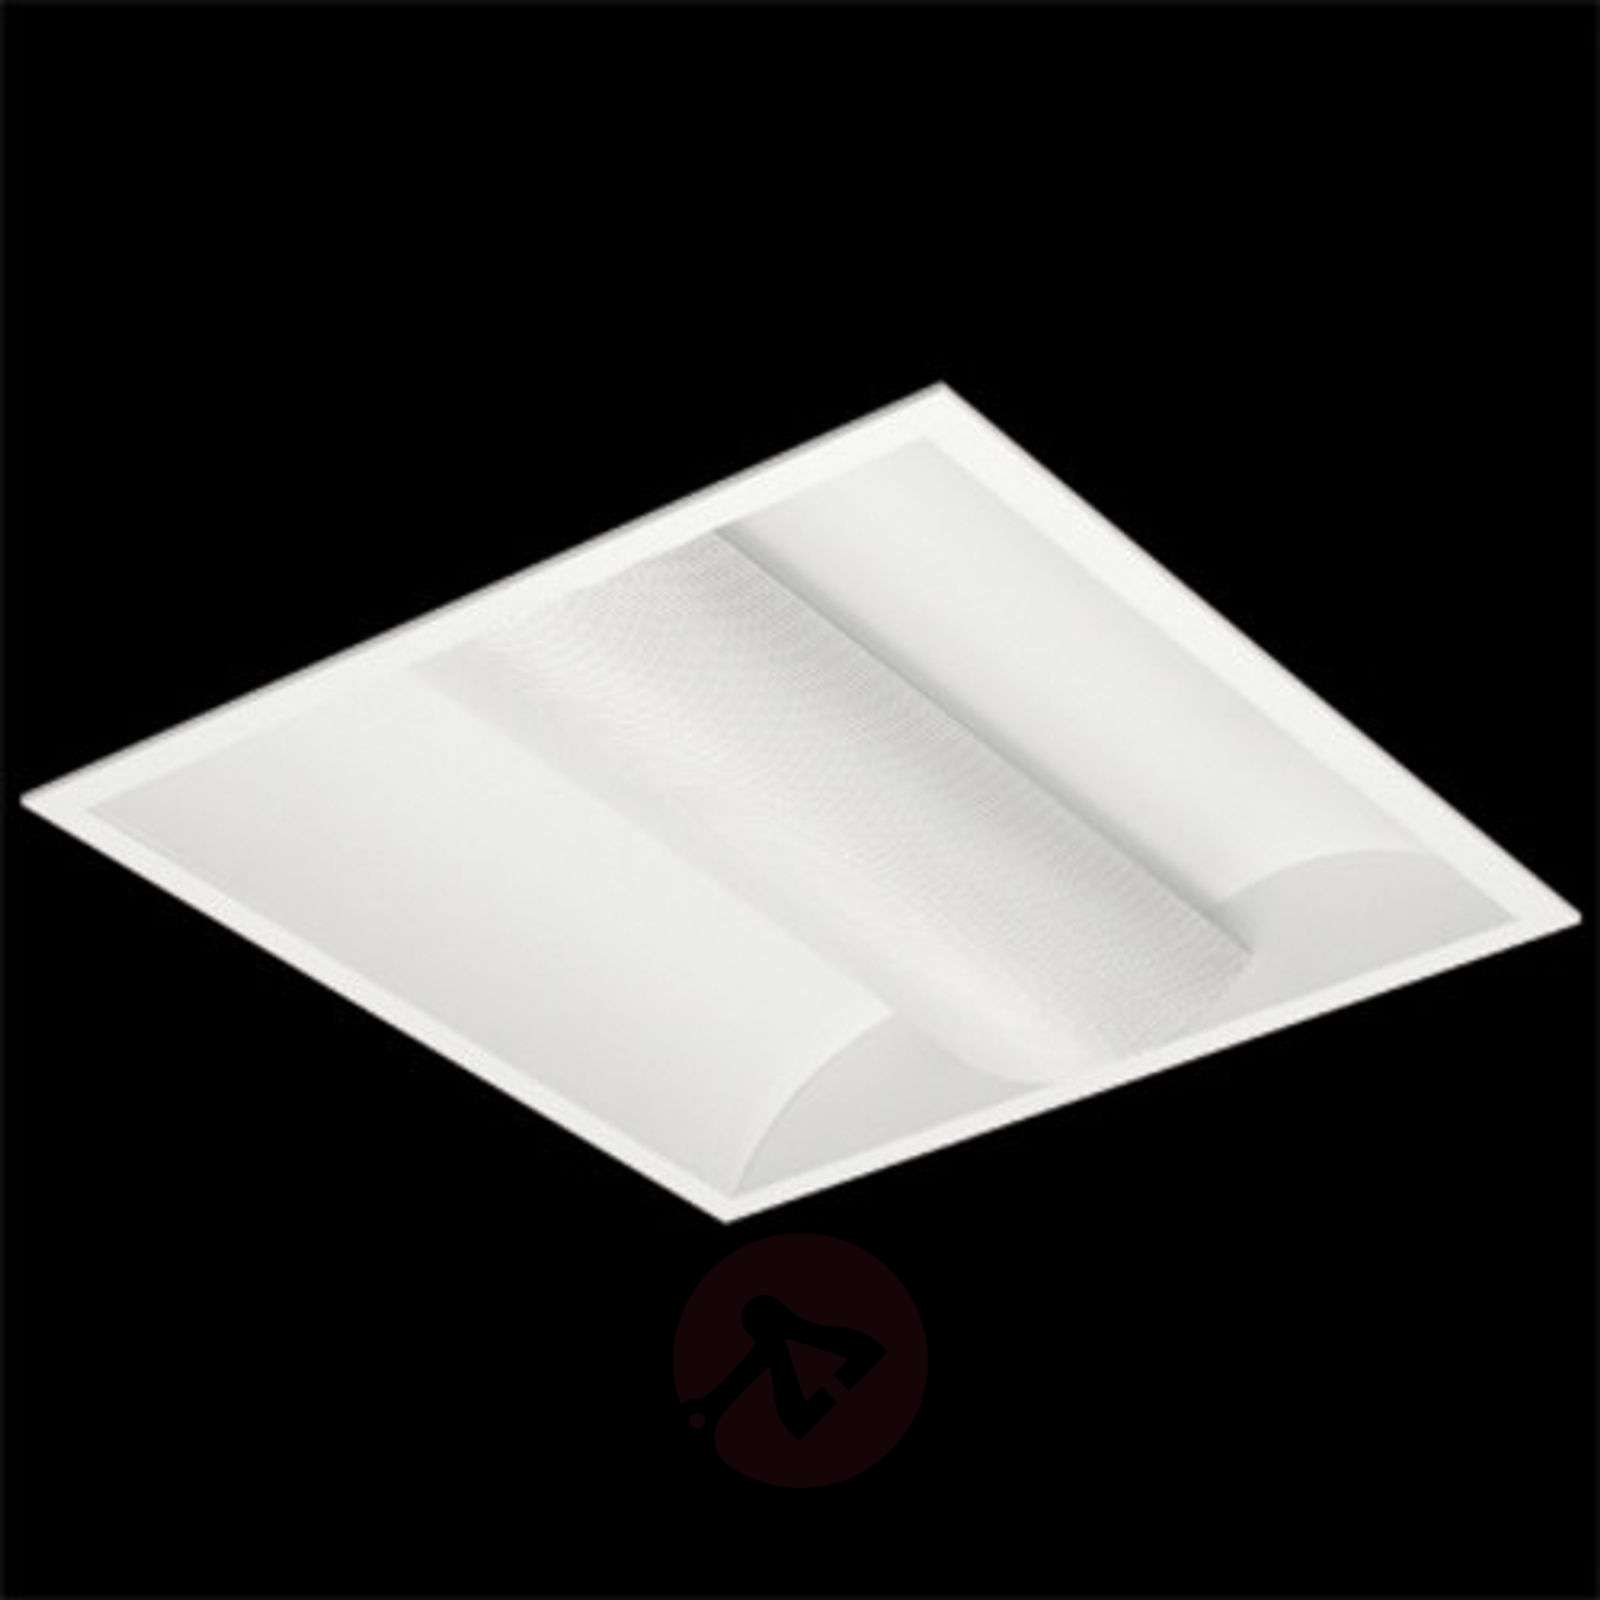 Eve recessed ceiling light, soft light 2 x 36 W-1002342-01